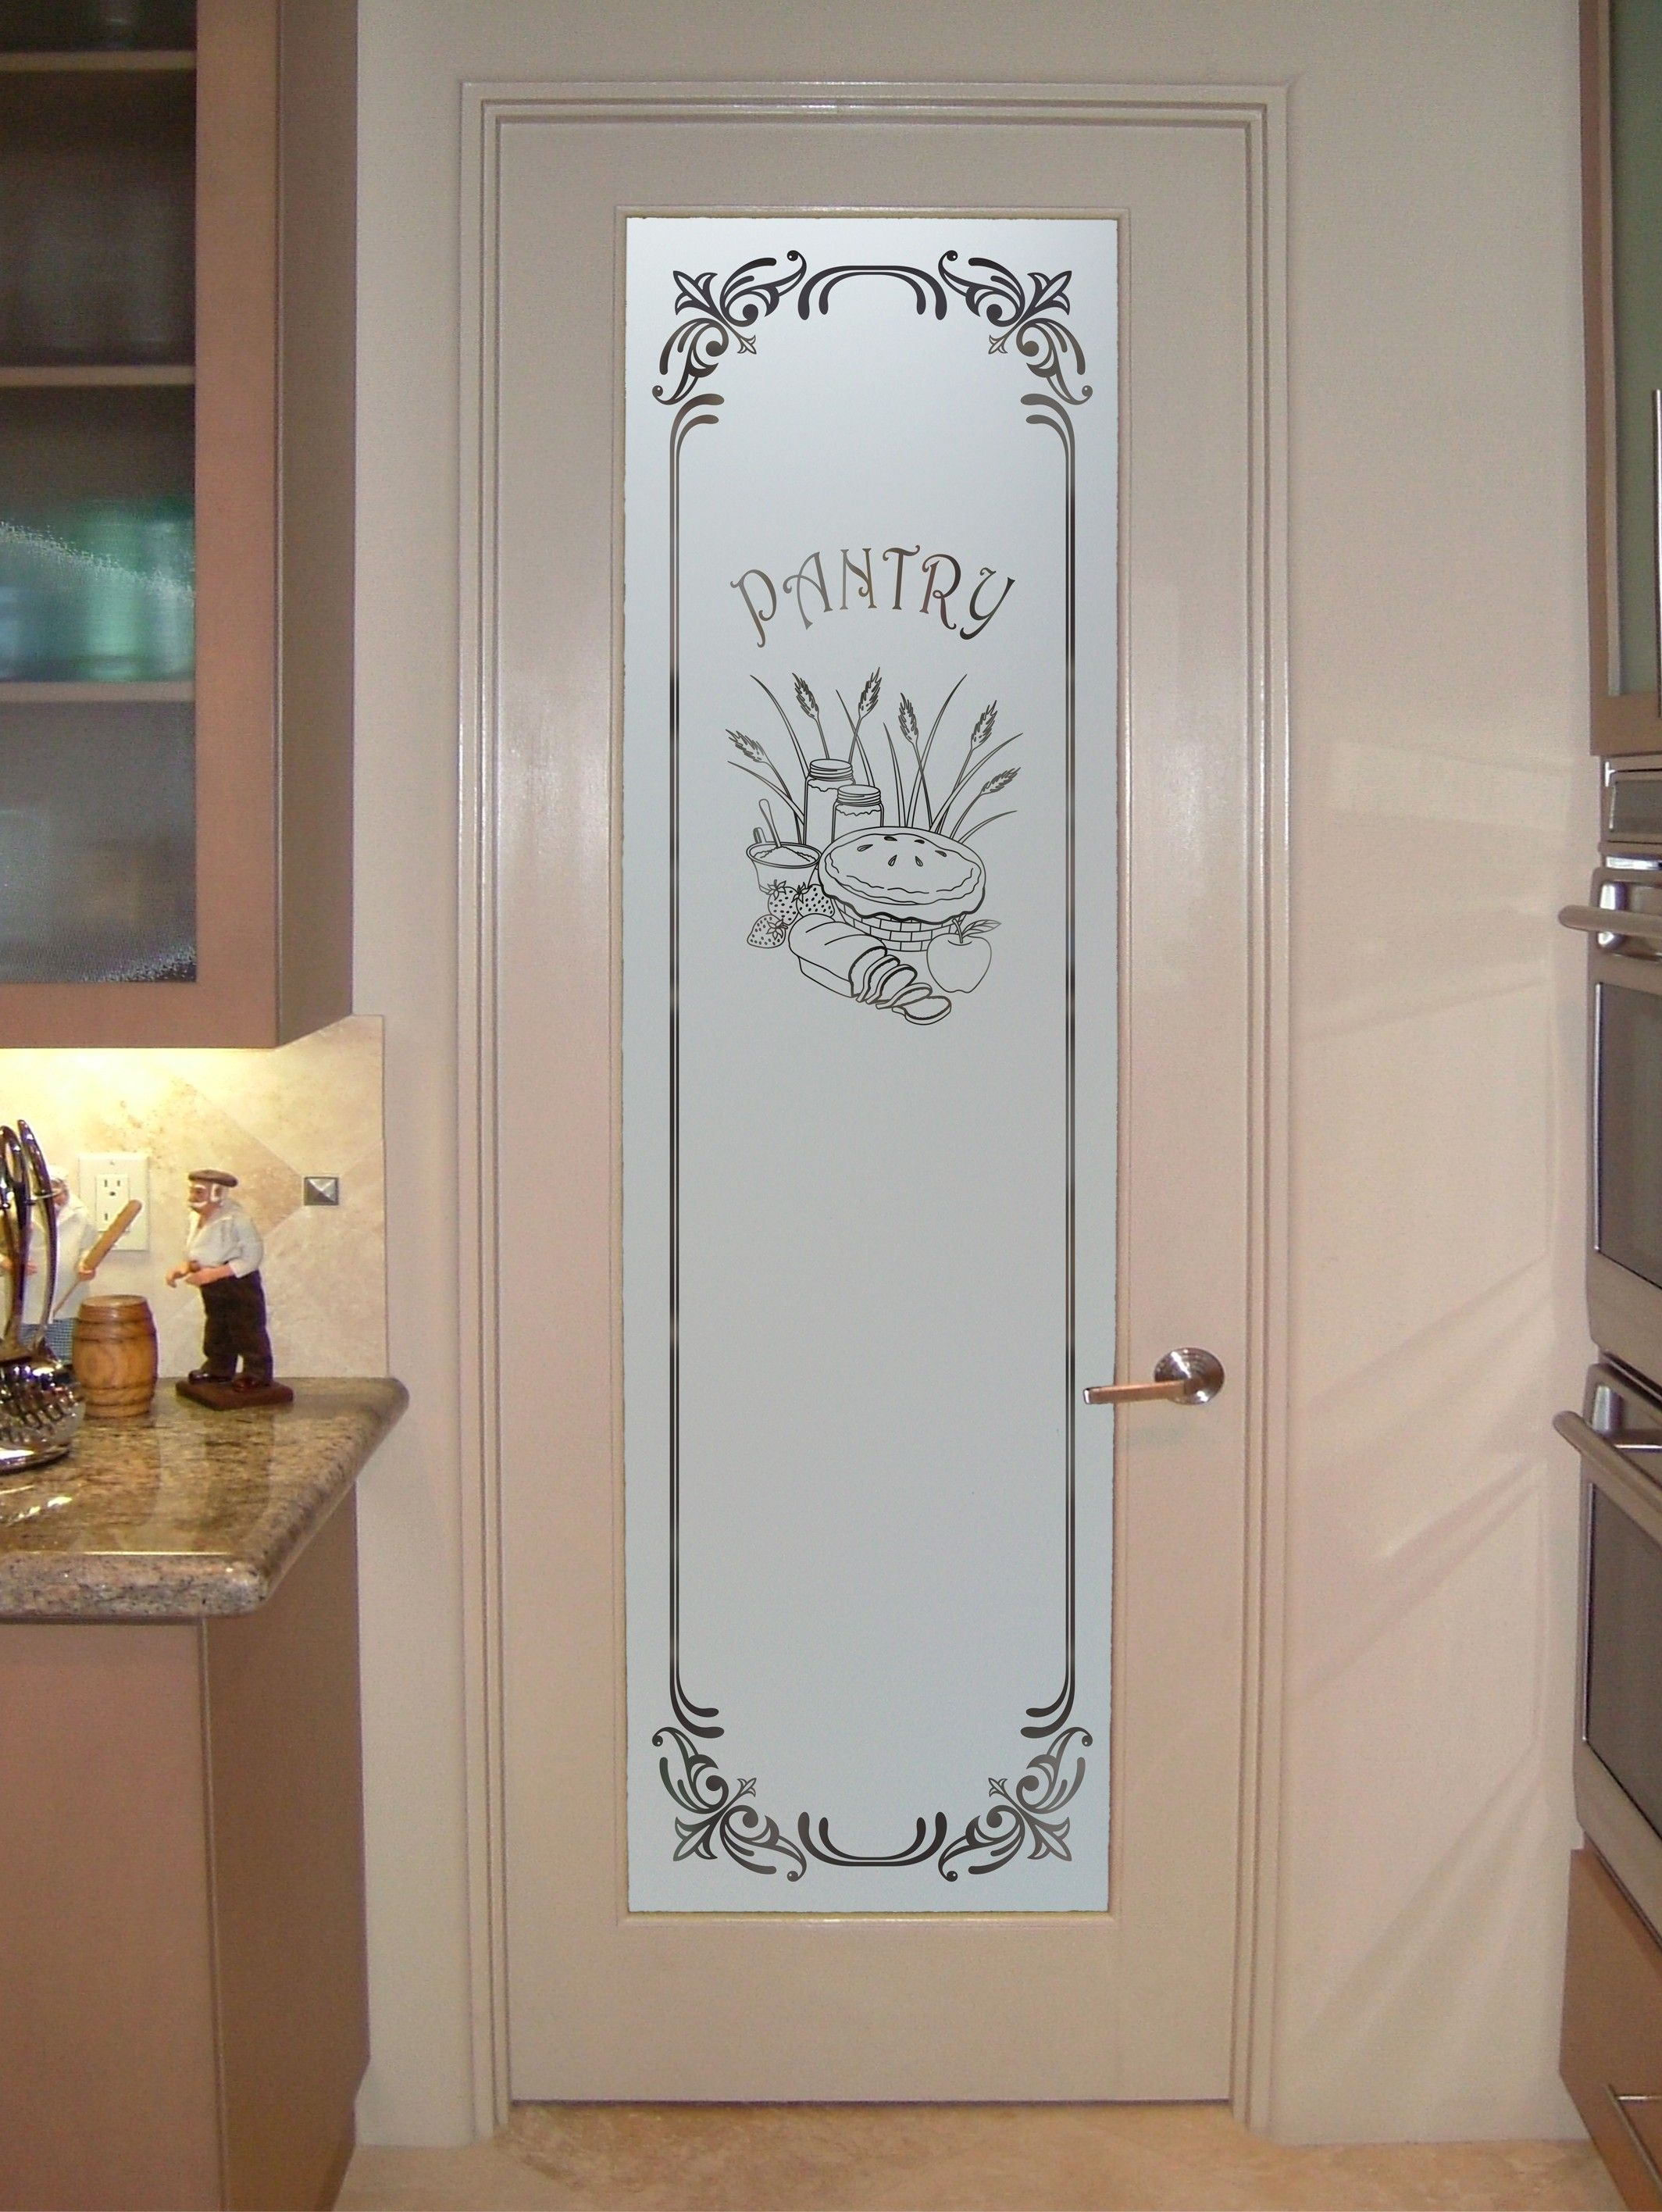 White Frosted Glass Interior Doors Removing The Frosted Glass Interior Doors Inspiring Doors Windows For Your Home Rangement Cuisine Rangement